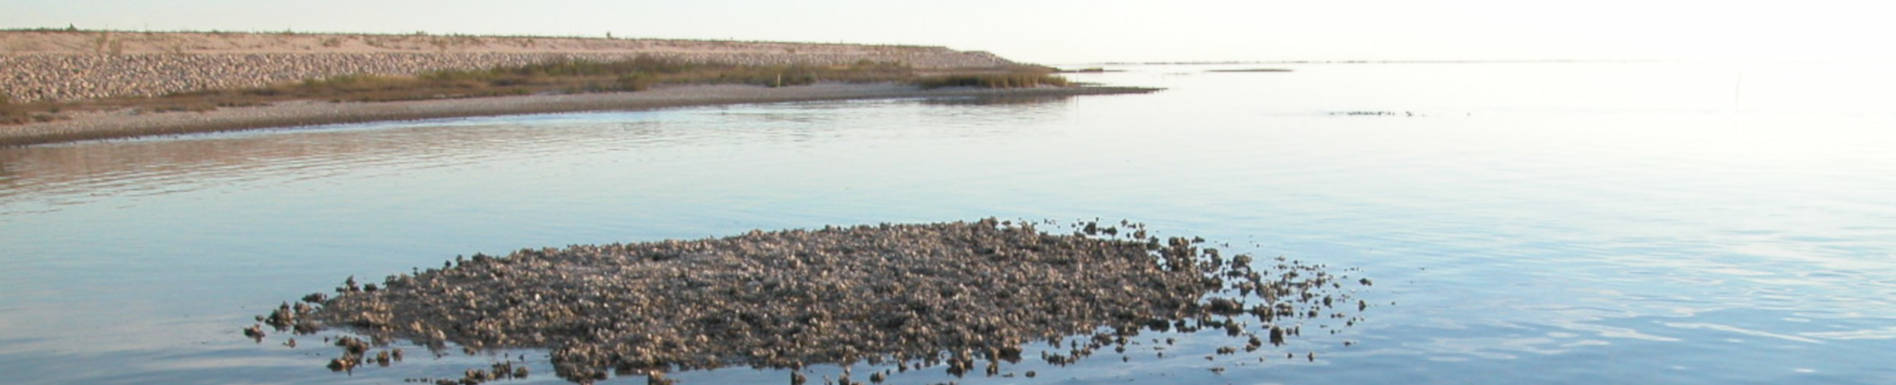 Oyster Reef Permit Evaluation Surveys